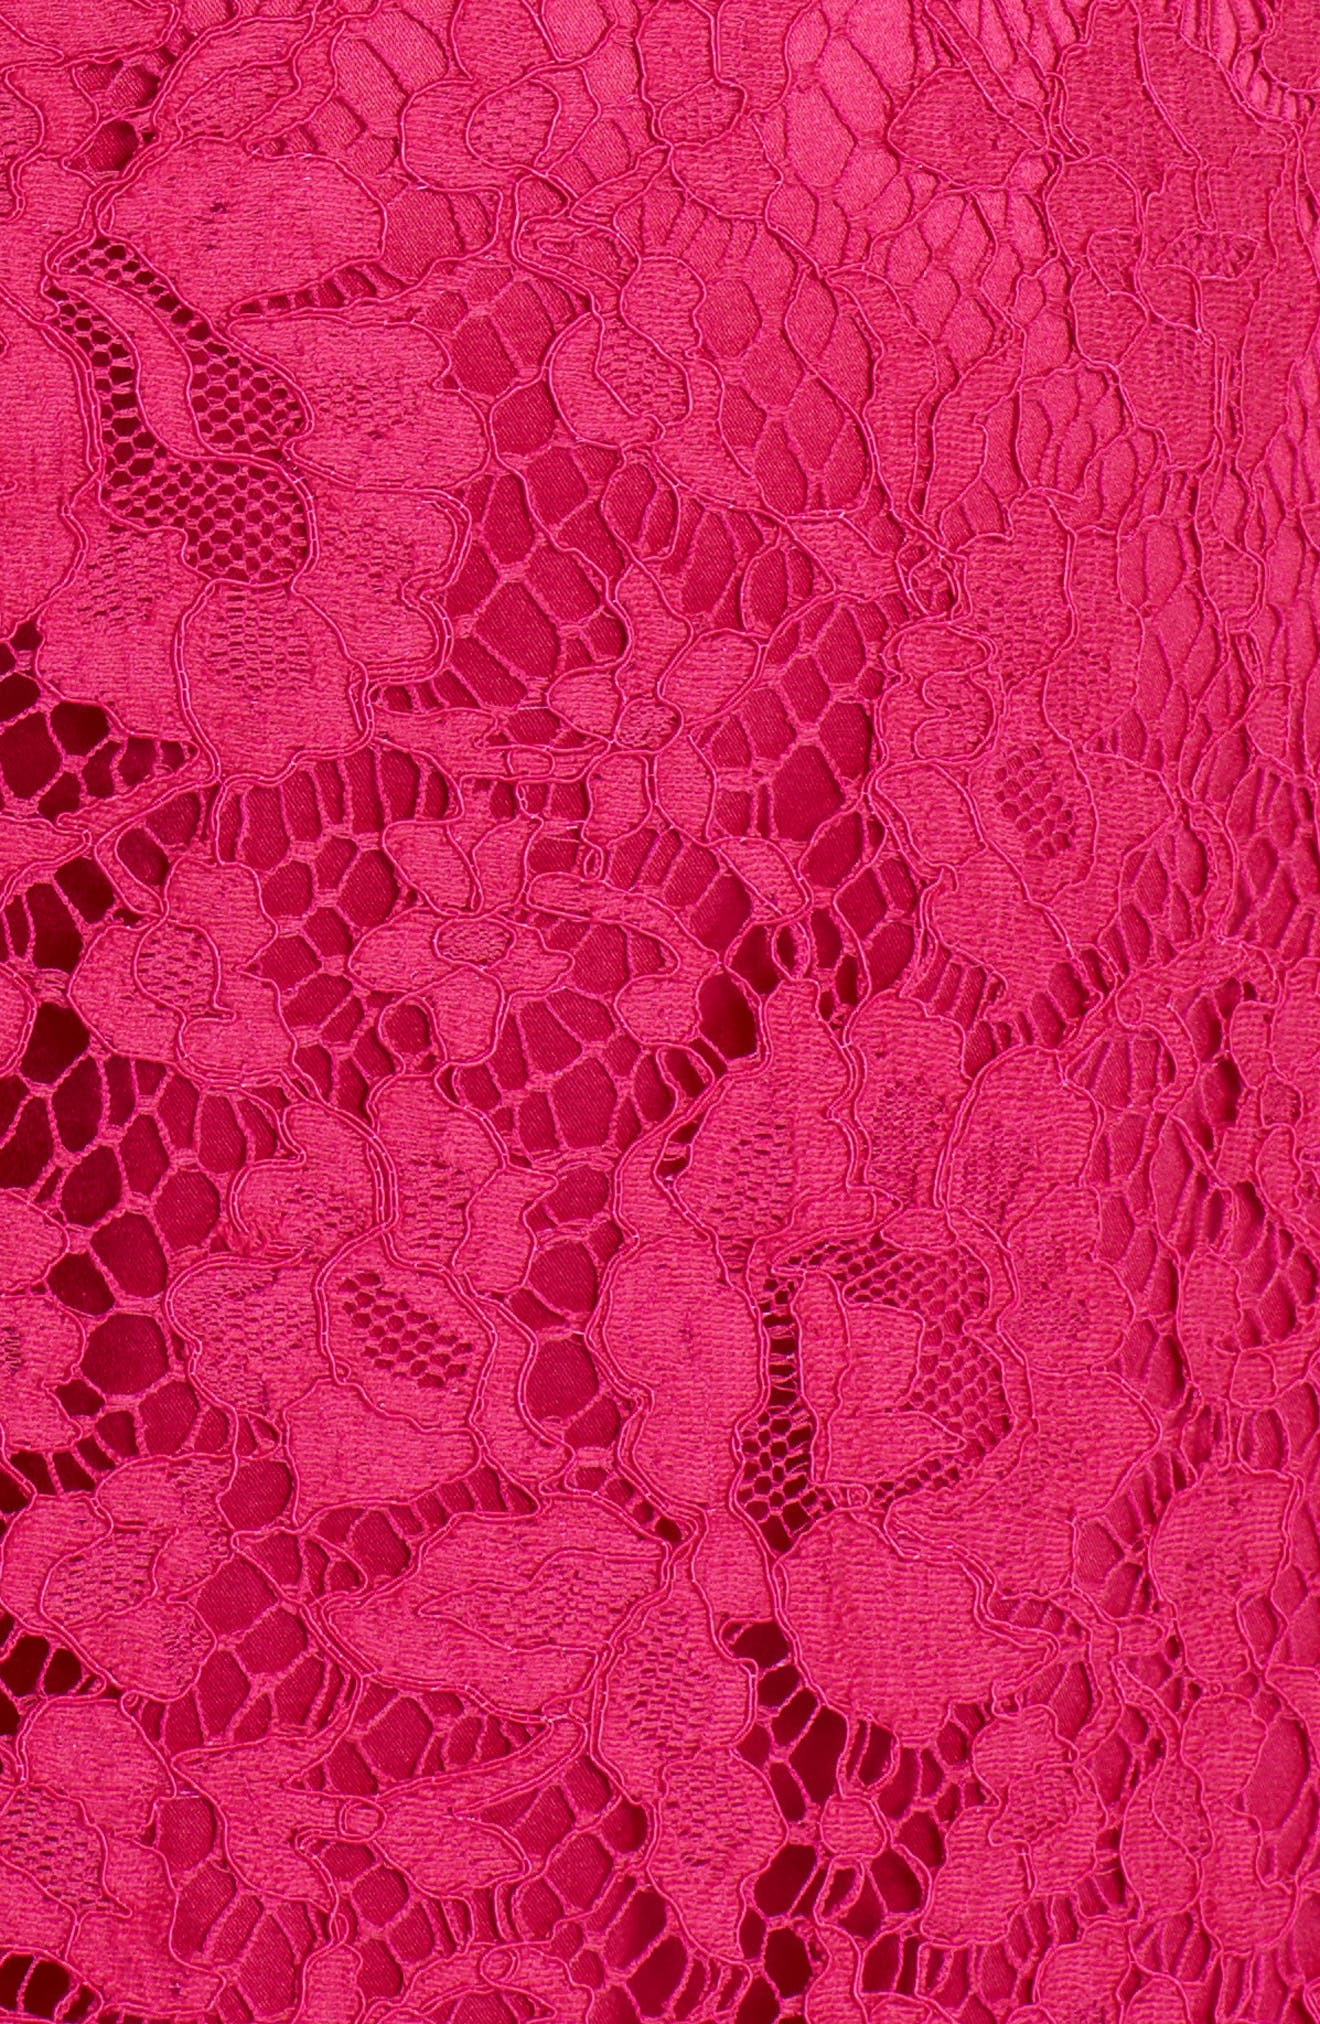 Lace A-Line Dress,                             Alternate thumbnail 5, color,                             Bright Pink